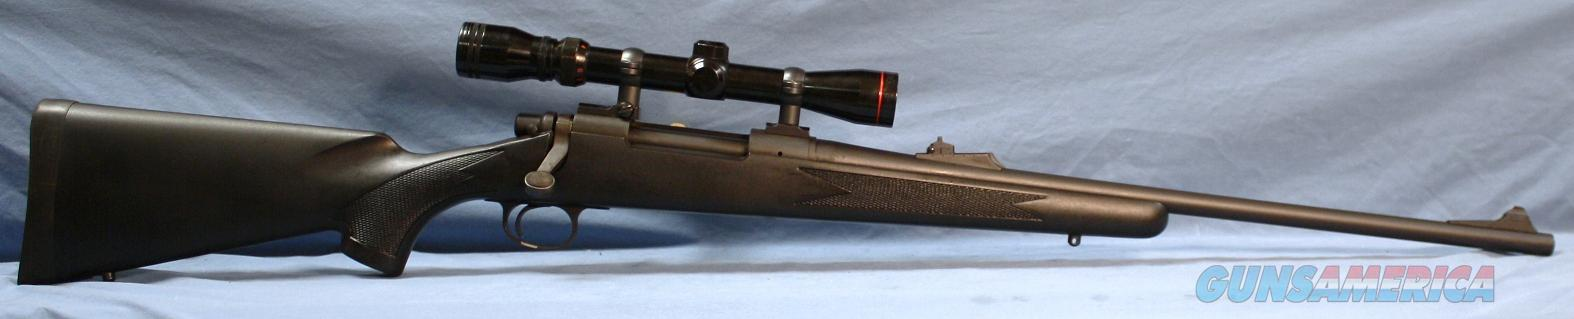 Remington 700 SPS Bolt Action Rifle with Simmons 3-9x32 Scope .270 Winchester  Guns > Rifles > Remington Rifles - Modern > Model 700 > Sporting